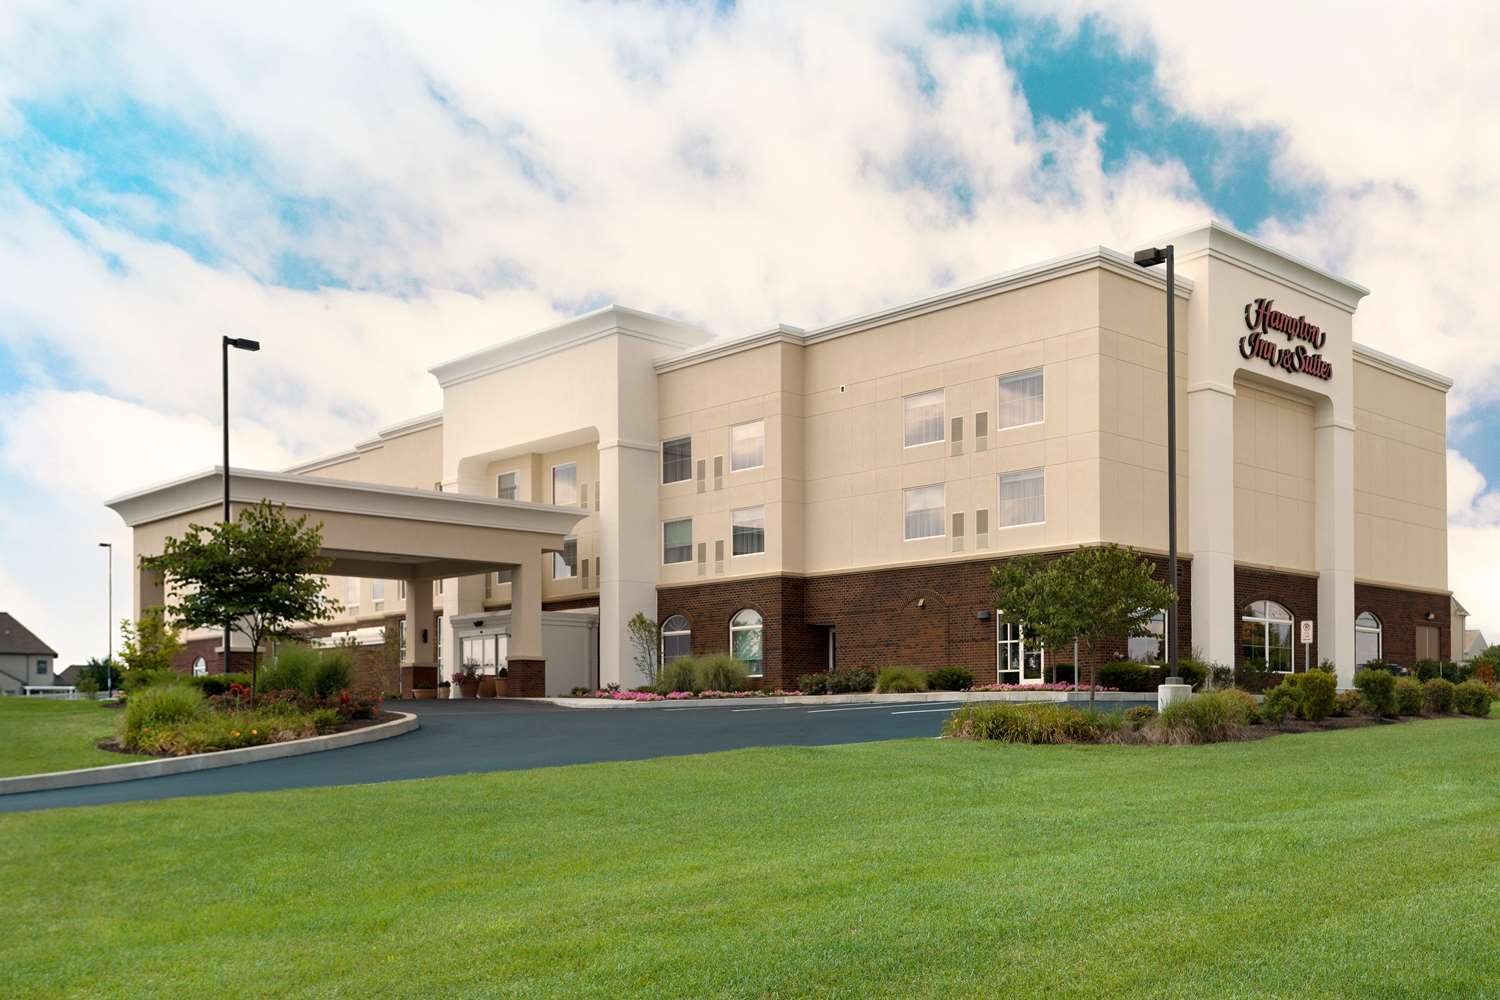 Country Inn & Suites by Carlson Hummelstown